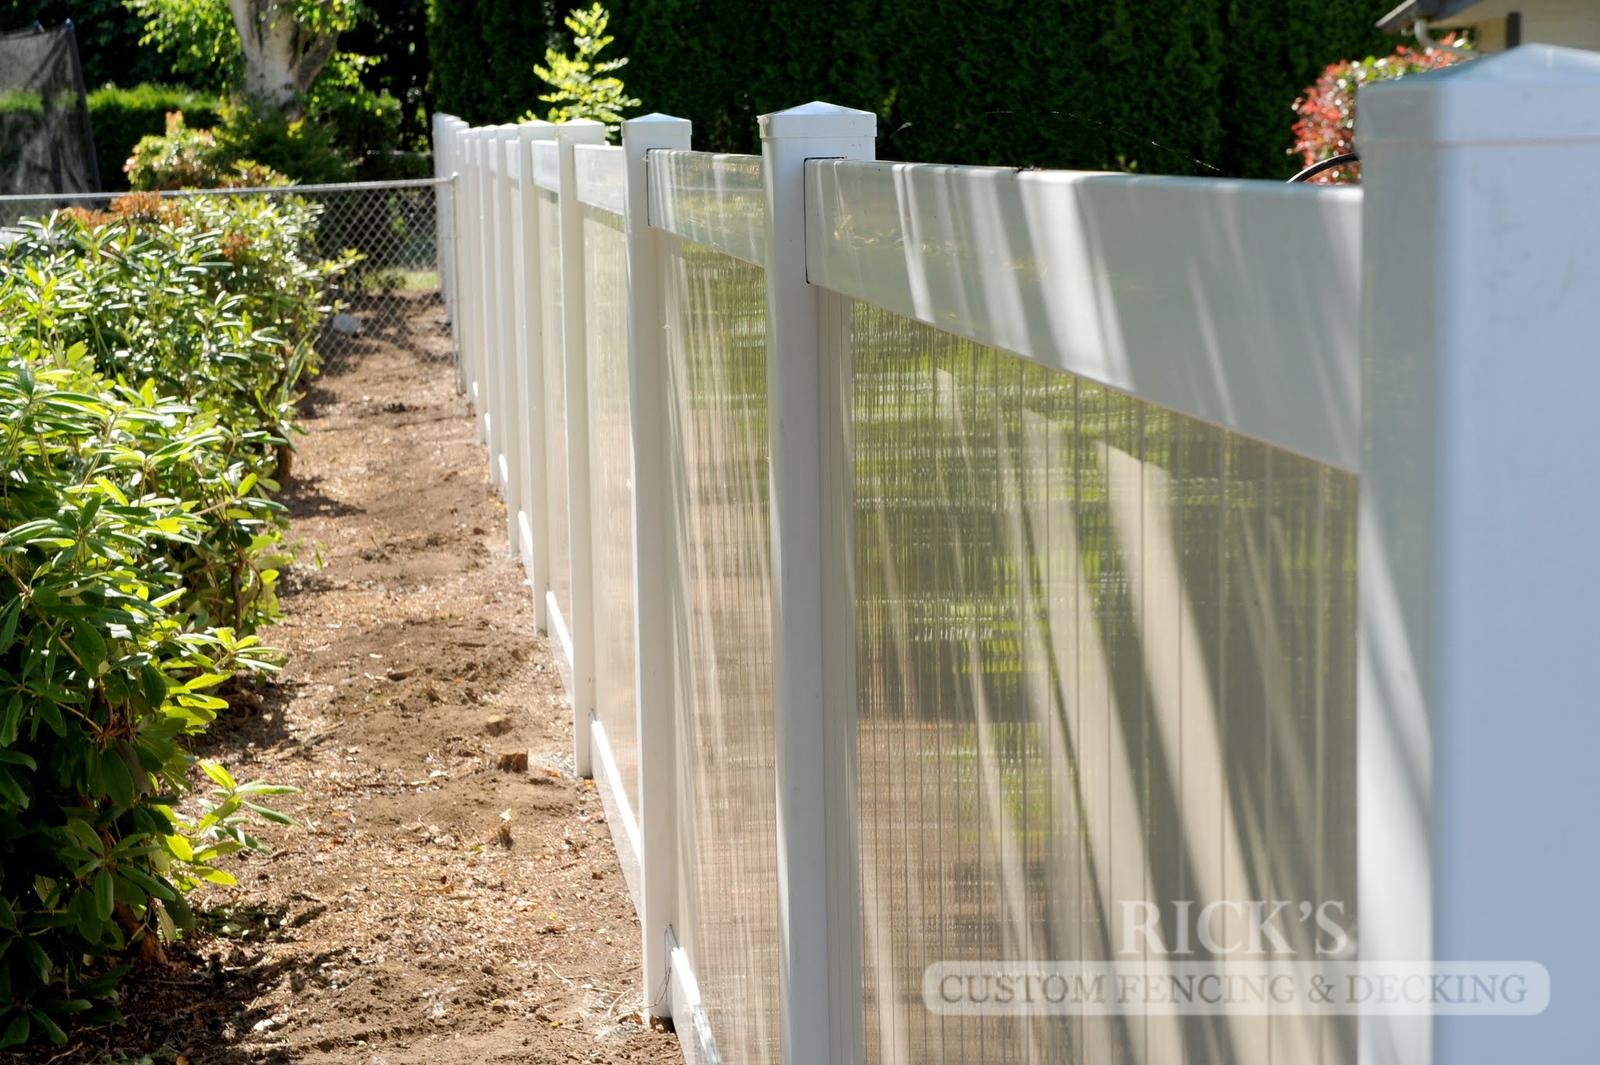 3023 - Vinyl Privacy Fencing